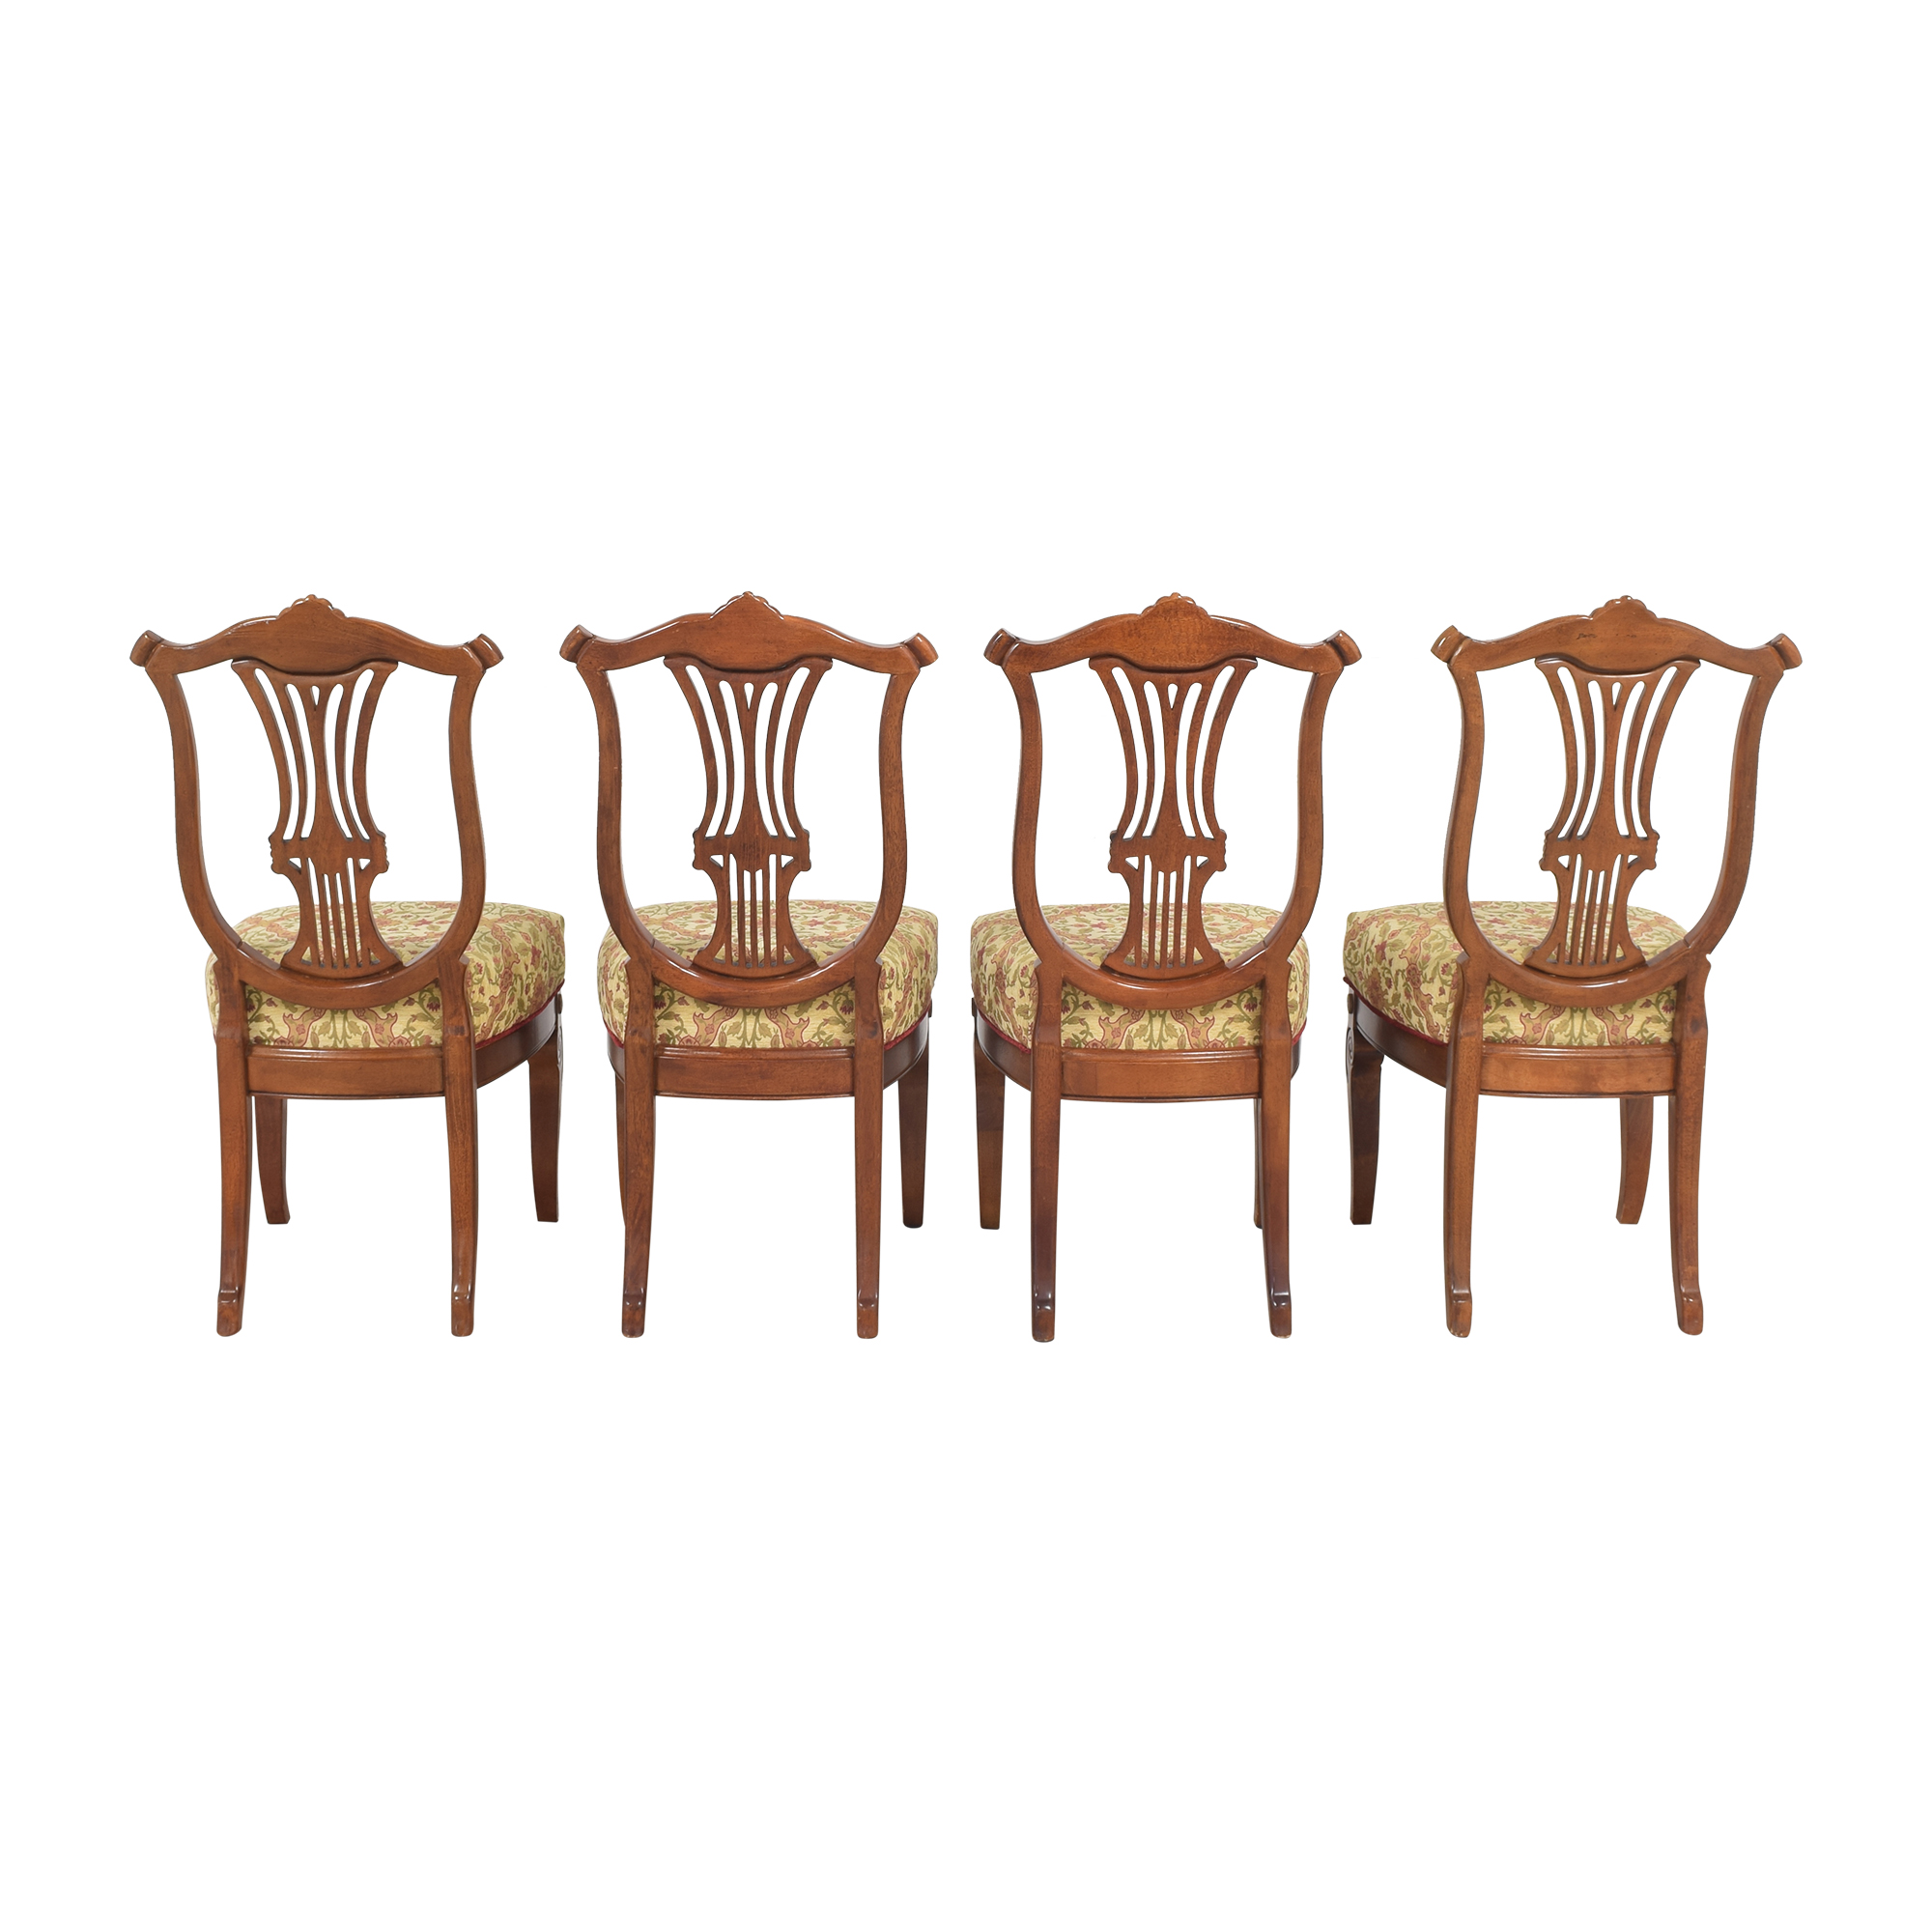 Universal Furniture Universal Furniture Upholstered Dining Chairs Chairs